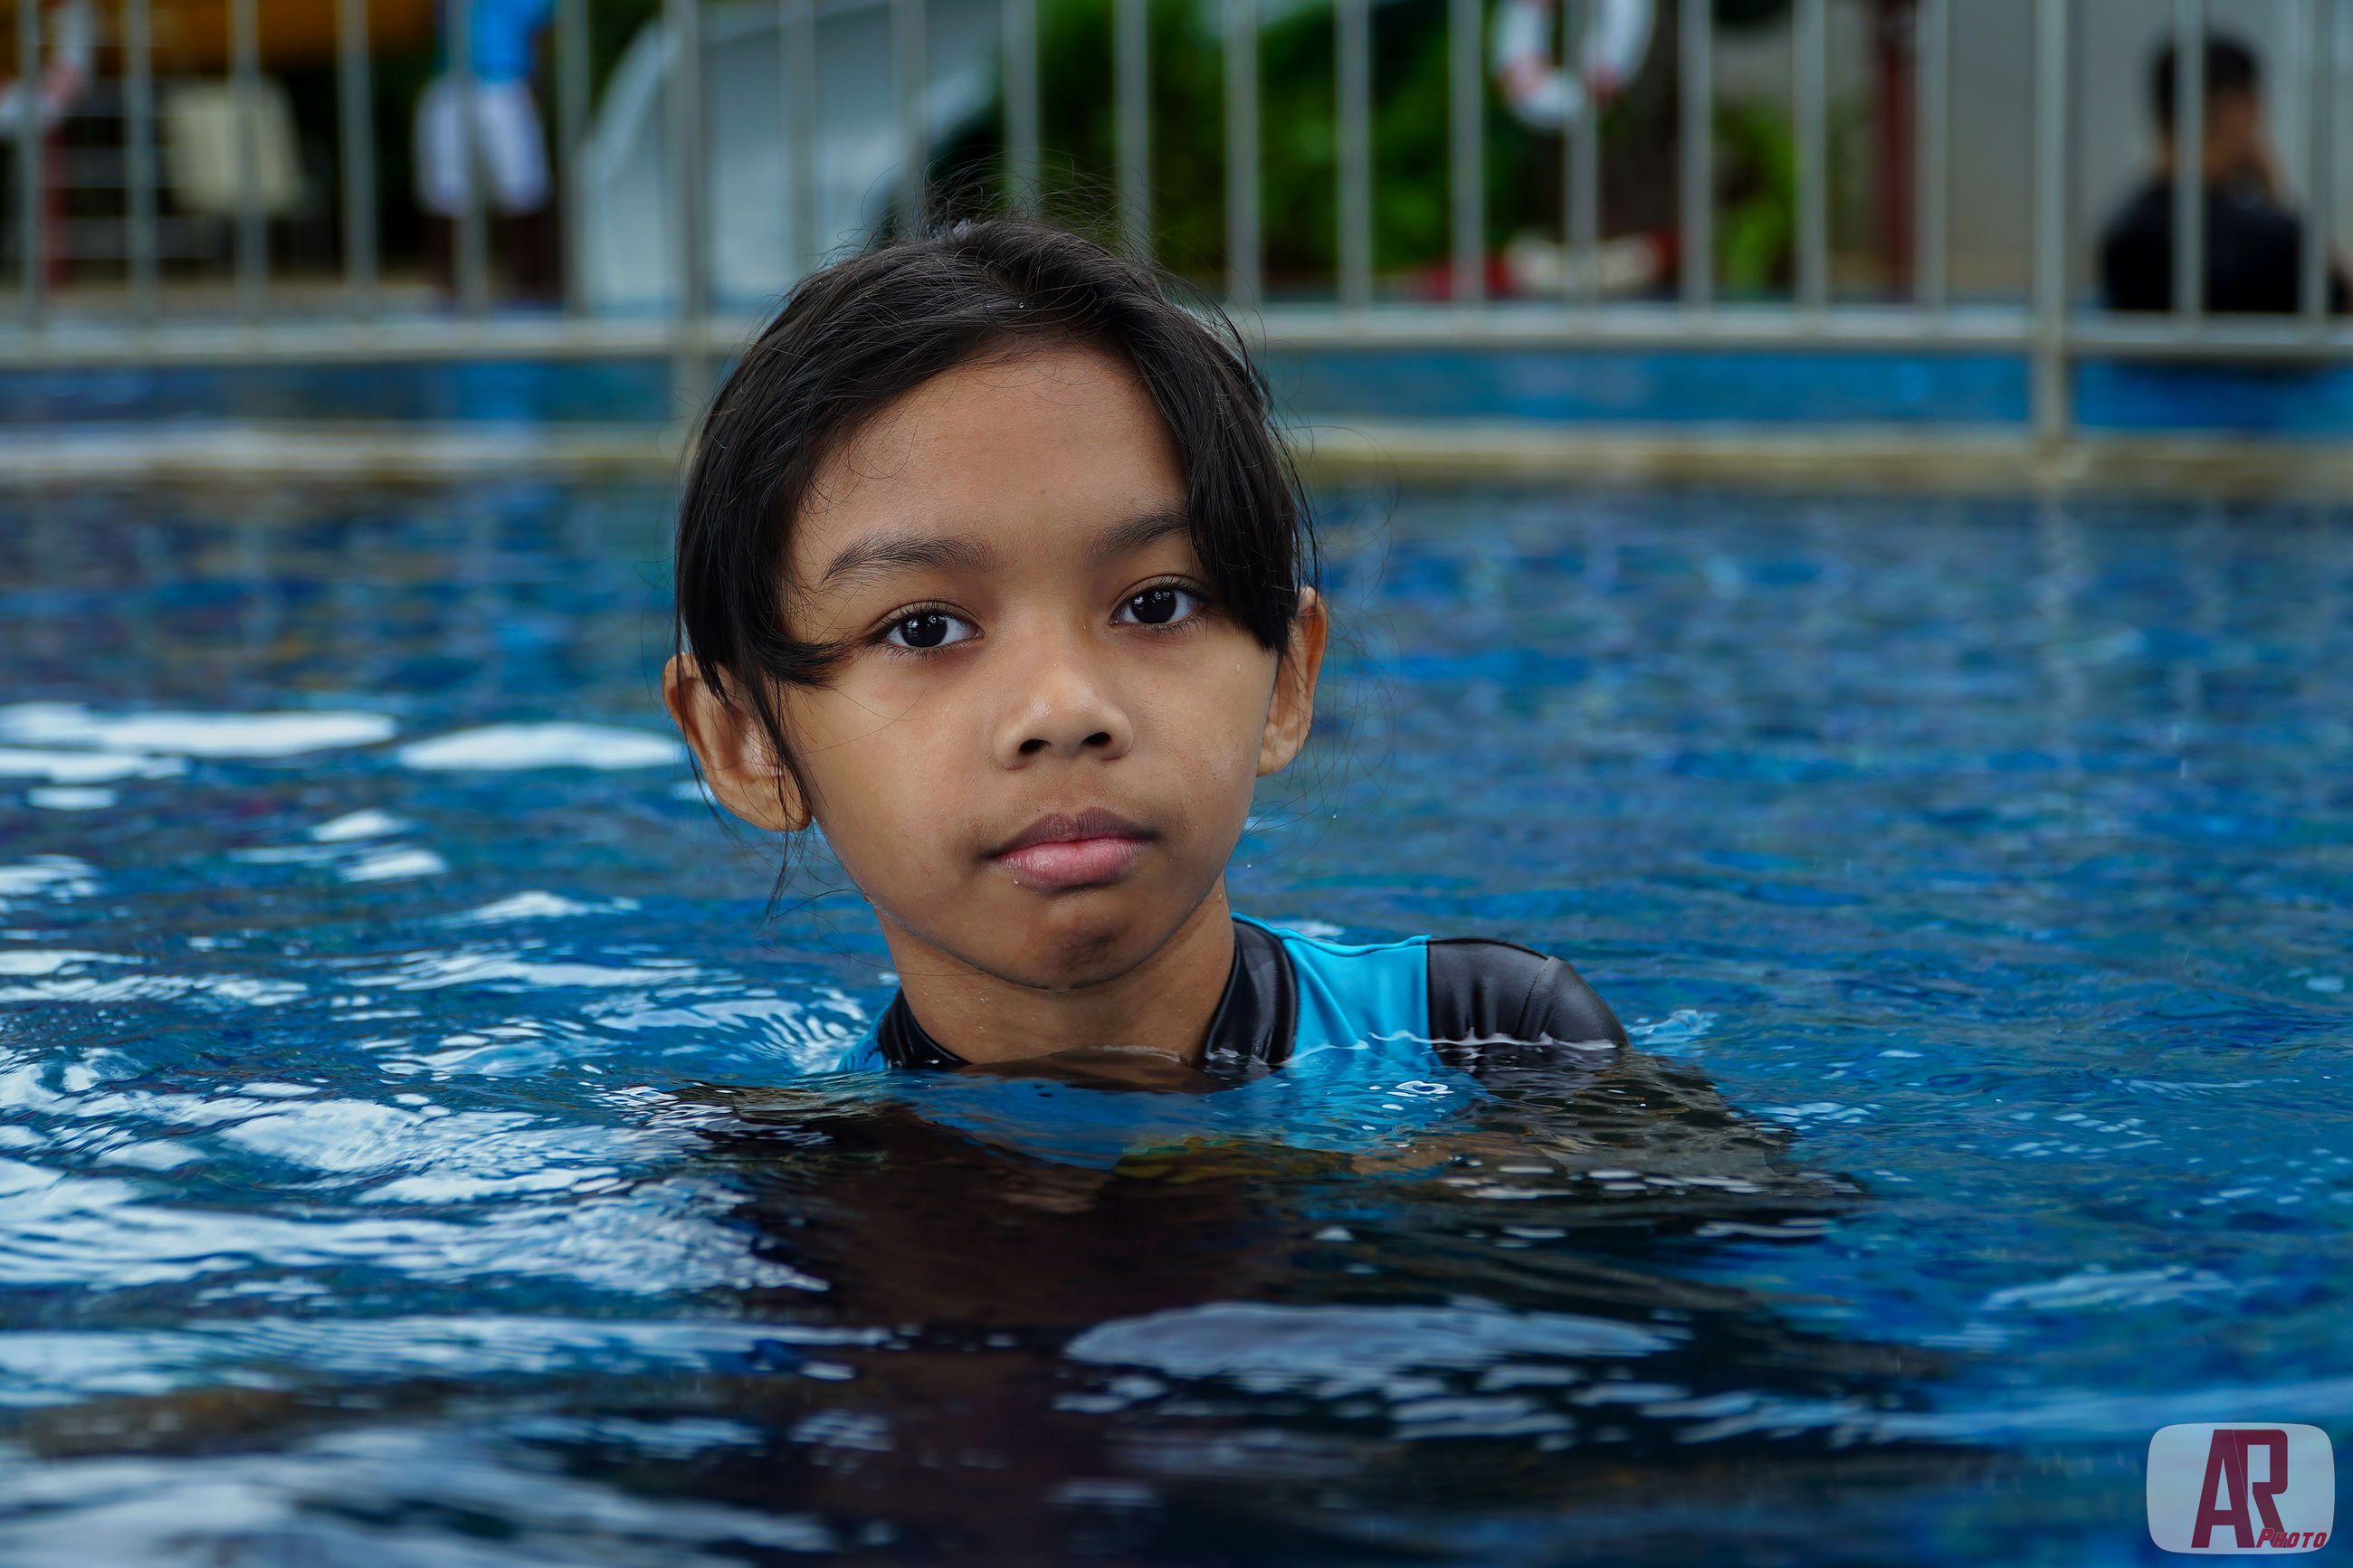 portrait, pool, child, swimming pool, childhood, headshot, swimming, water, one person, leisure activity, real people, boys, lifestyles, looking at camera, waterfront, girls, males, innocence, outdoors